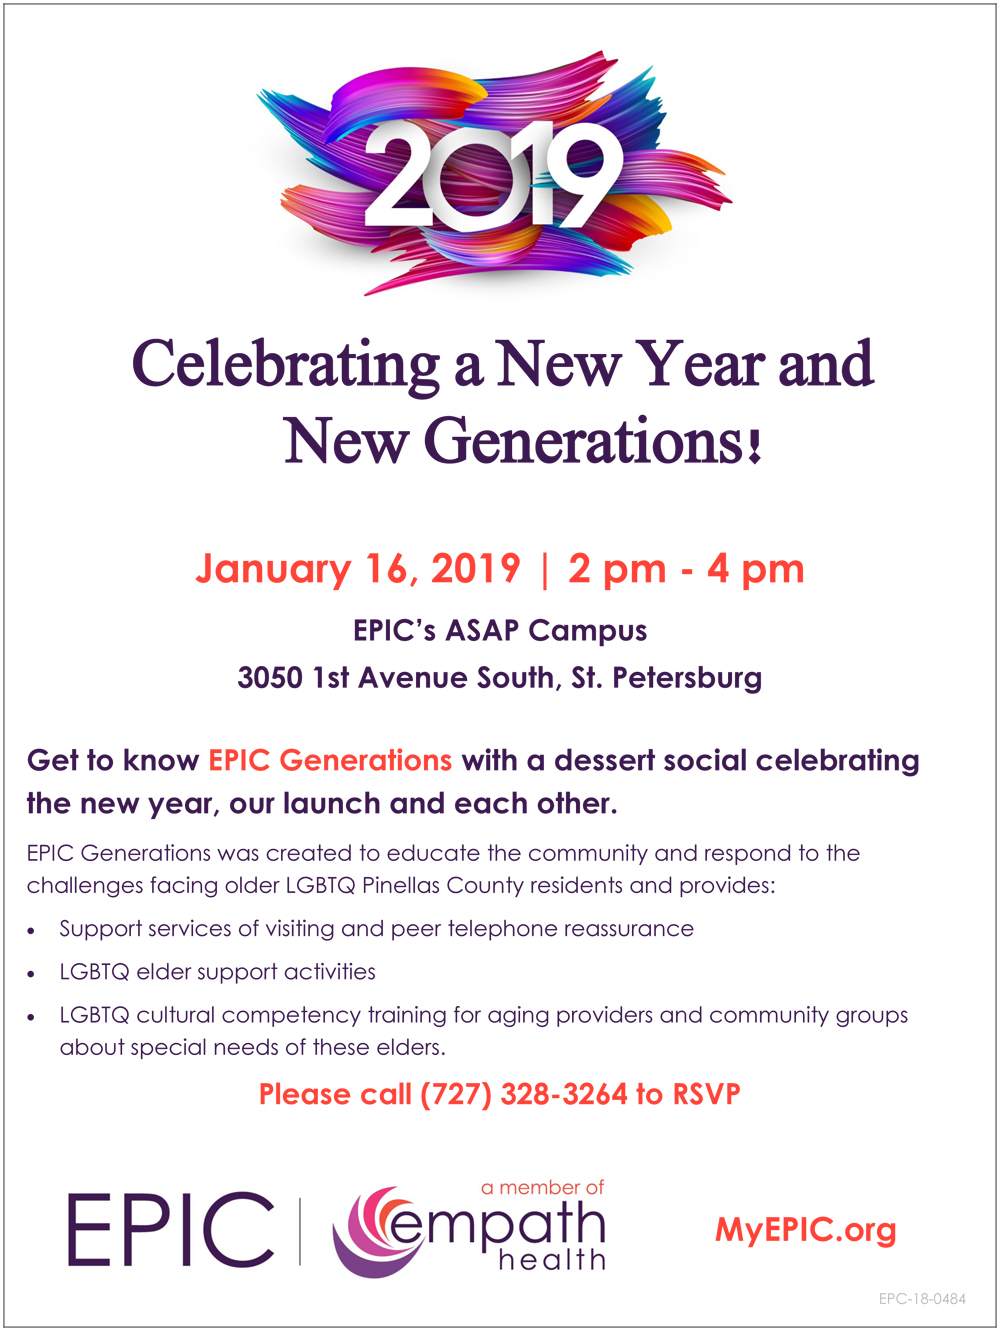 Celebrating a New Year and New Generations! @ EPIC (Empath Partners In Care) ASAP Campus | Saint Petersburg | Florida | United States